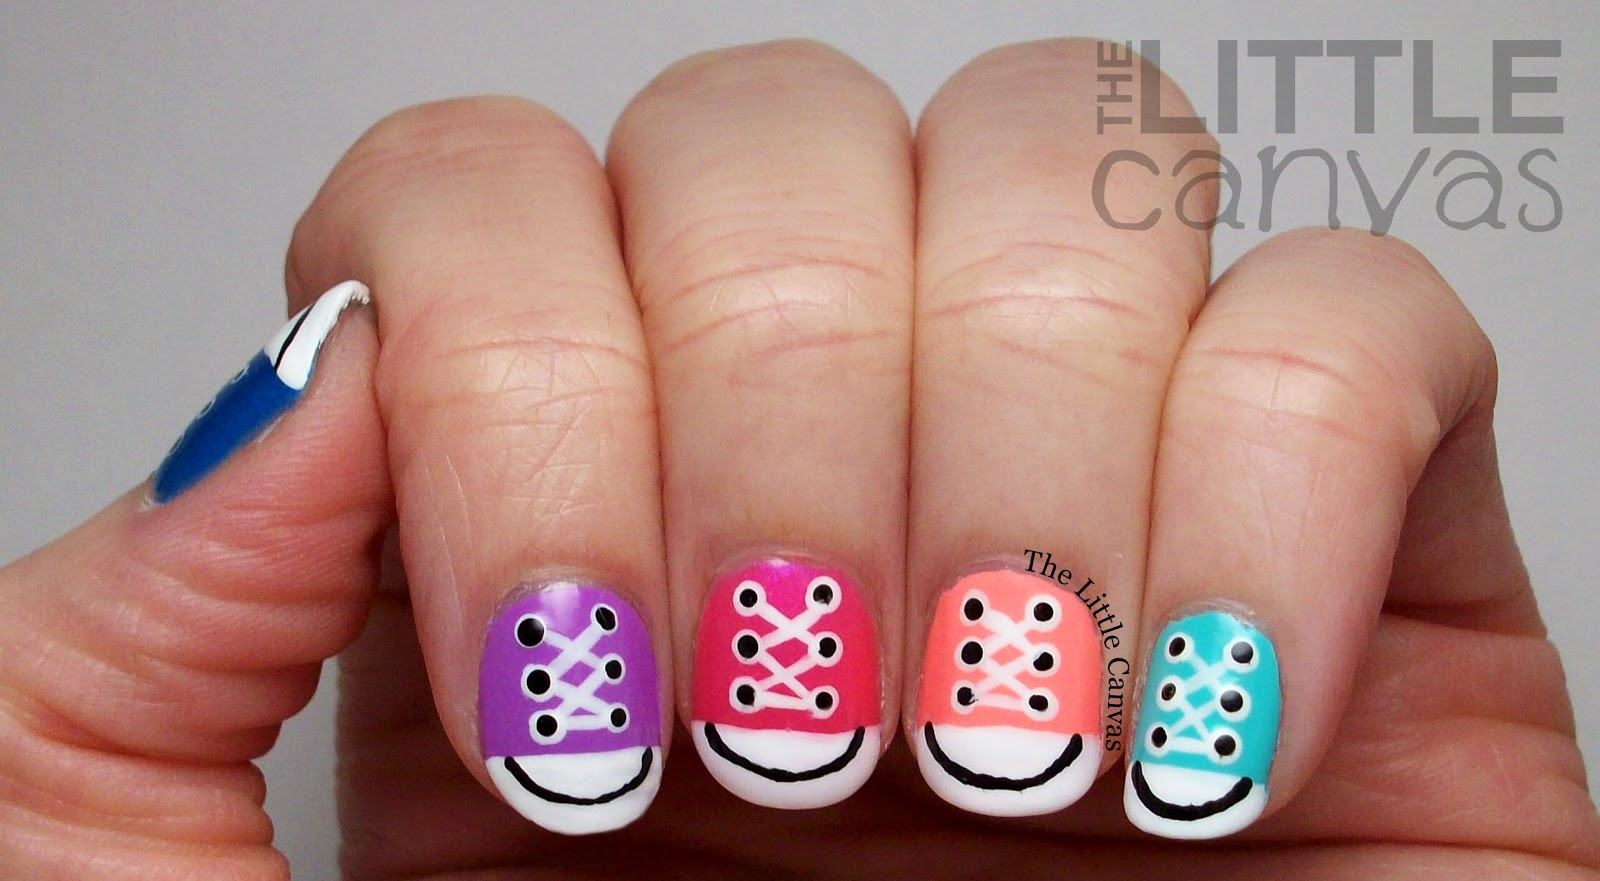 49e168a844cb96 Converse Nail Art Take 2 + Tutorial! - The Little Canvas